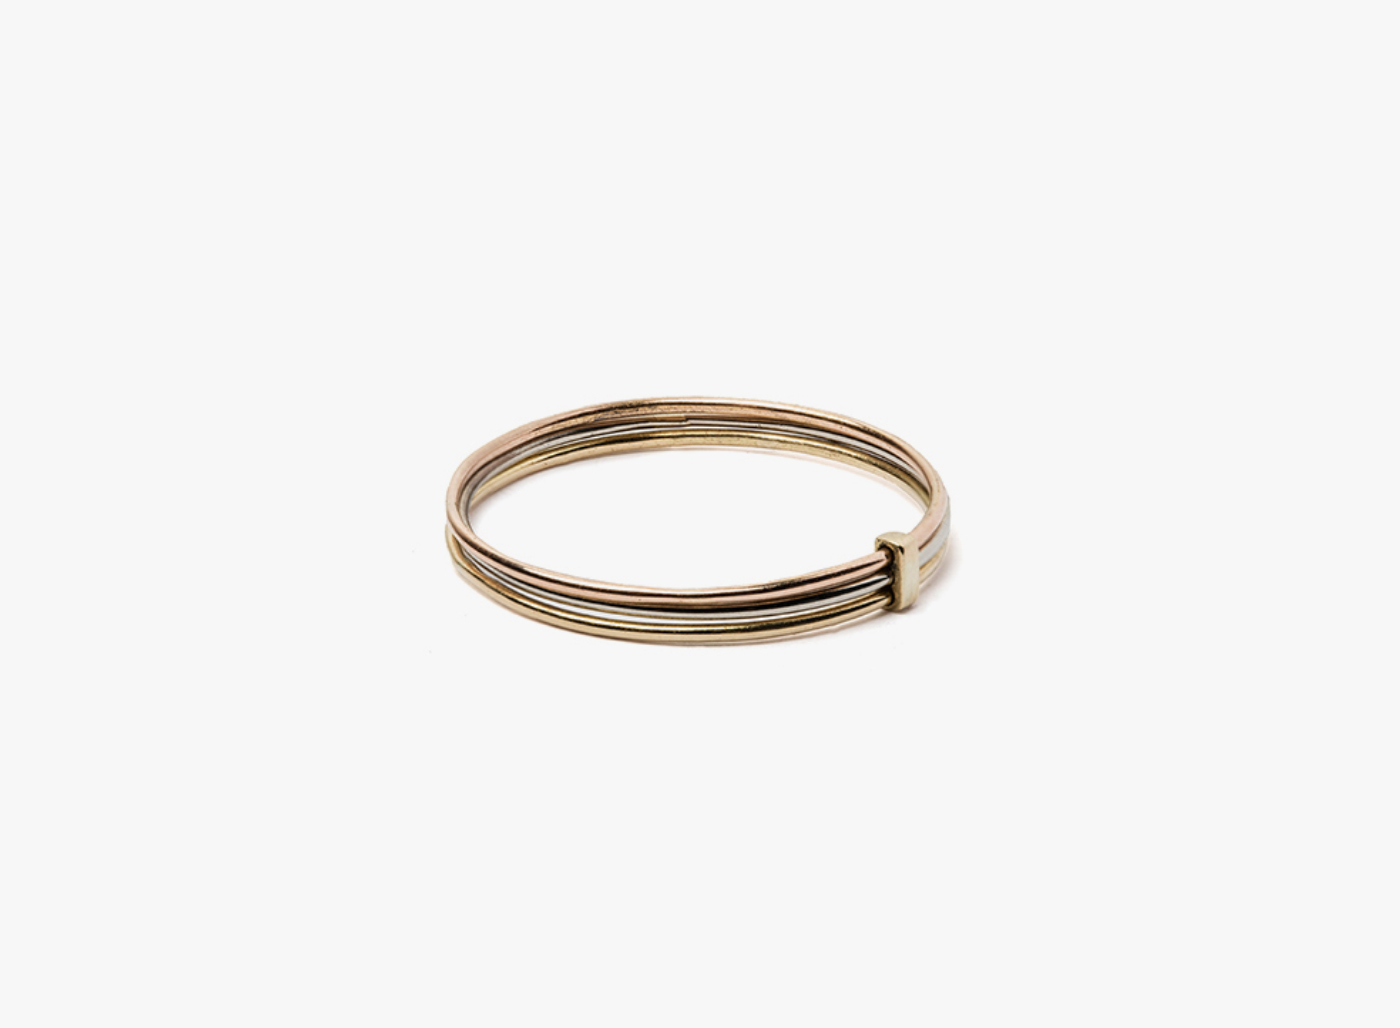 Image of 3-20 gauge 18k gold ring / connected